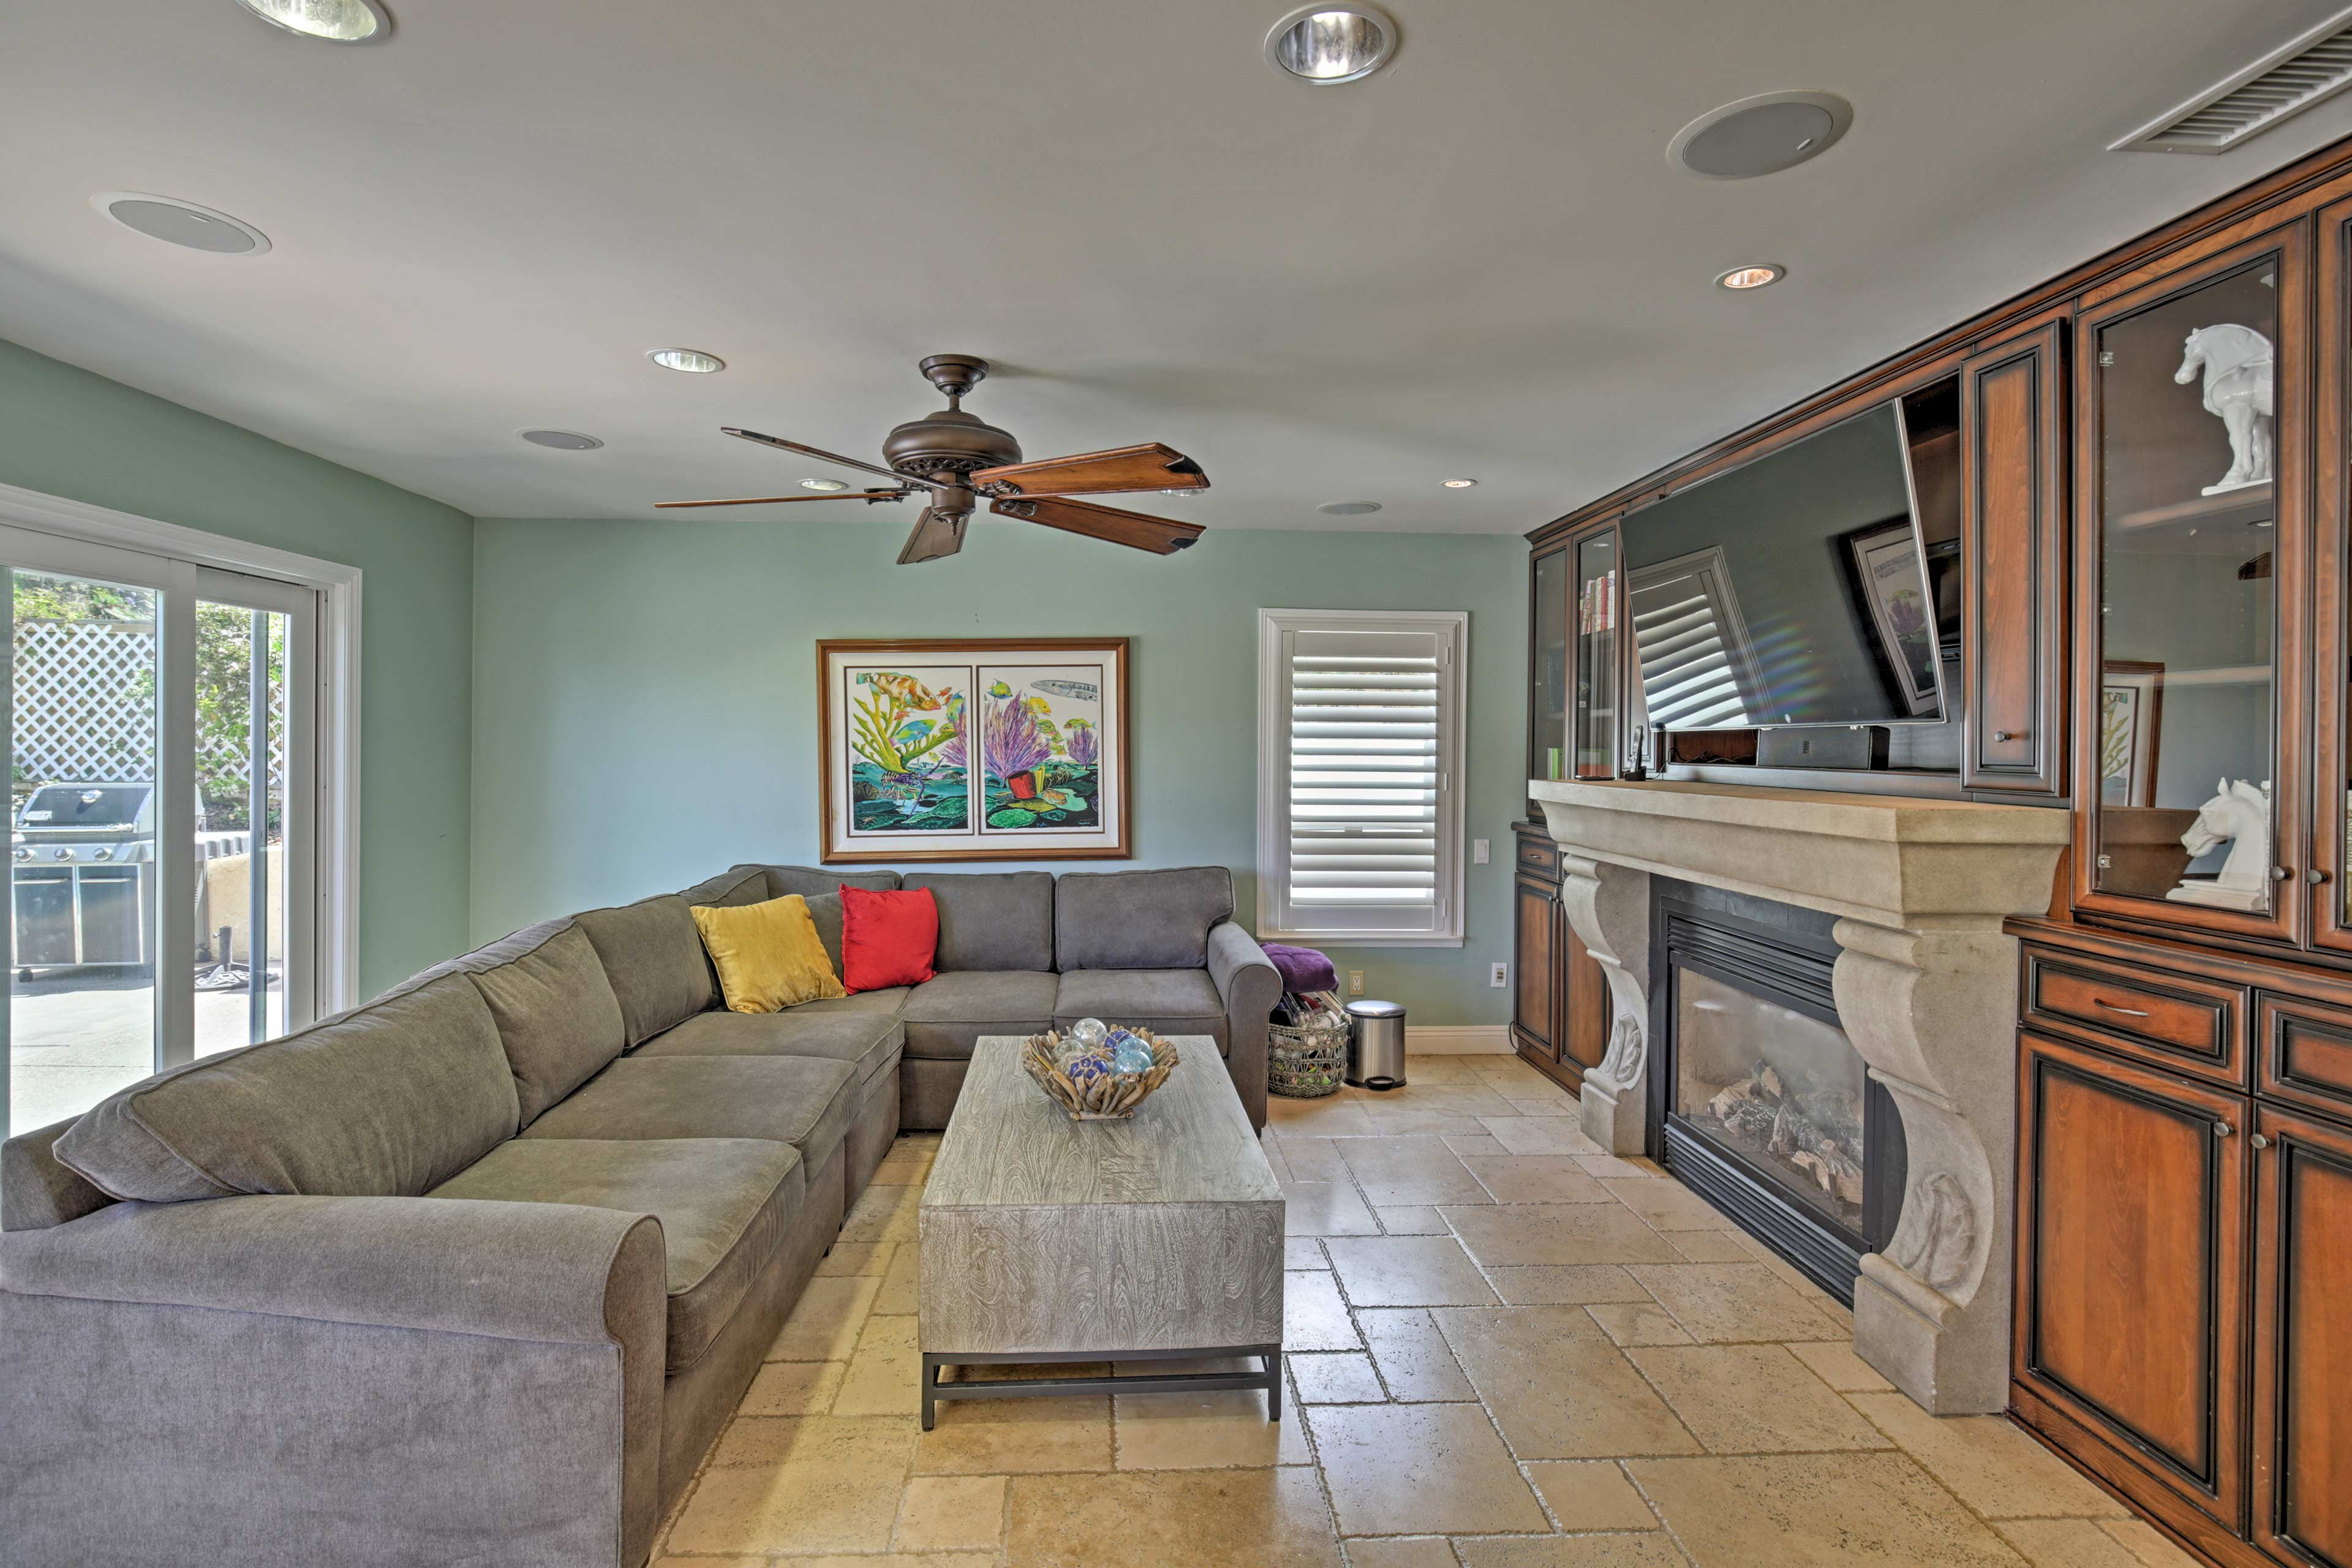 After a day on the beach, enjoy a catnap on this large sectional couch.